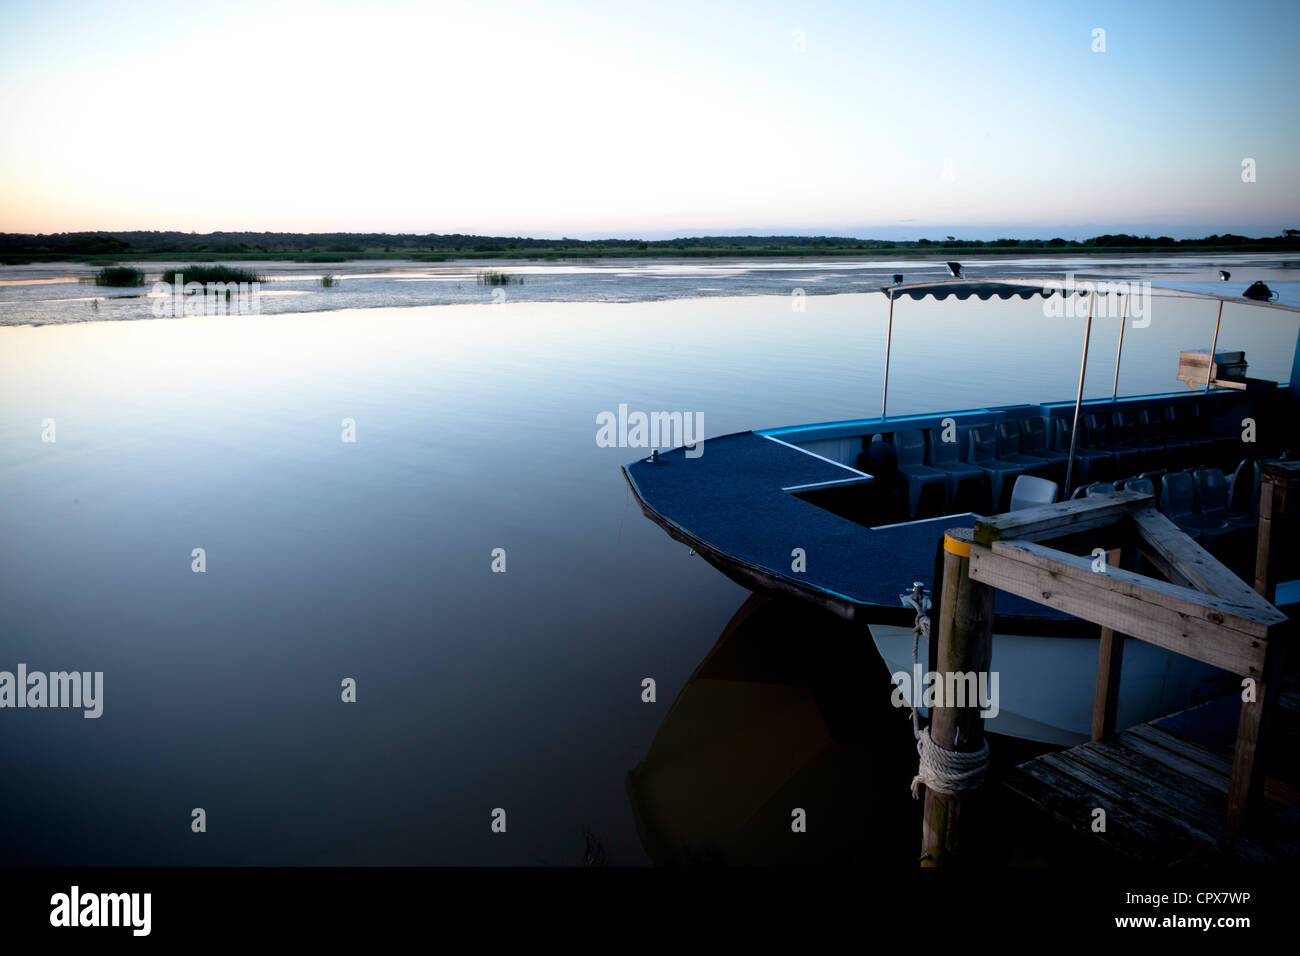 Overall view of a dam at dawn, with a boat in the foreground - Stock Image